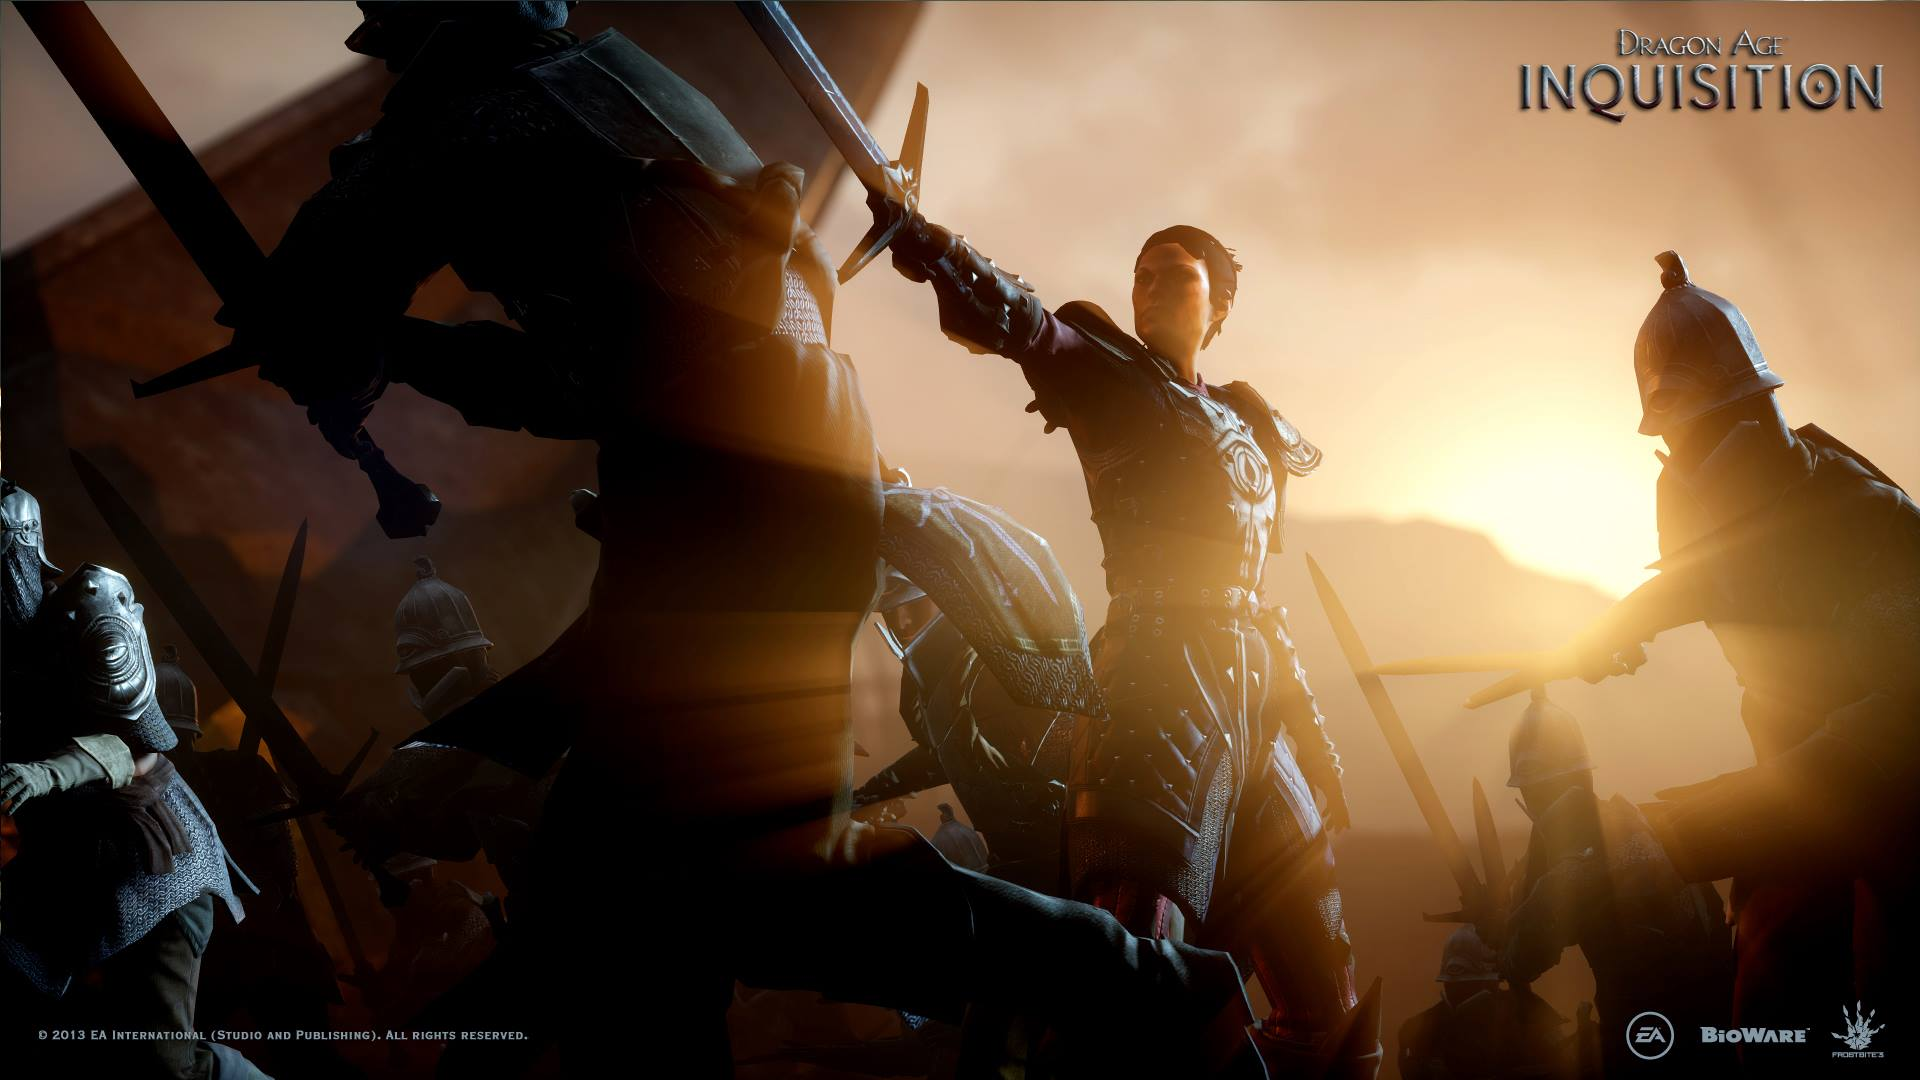 Así se ve Dragon Age: Inquisition con Frostbite 3 [Imagenes]